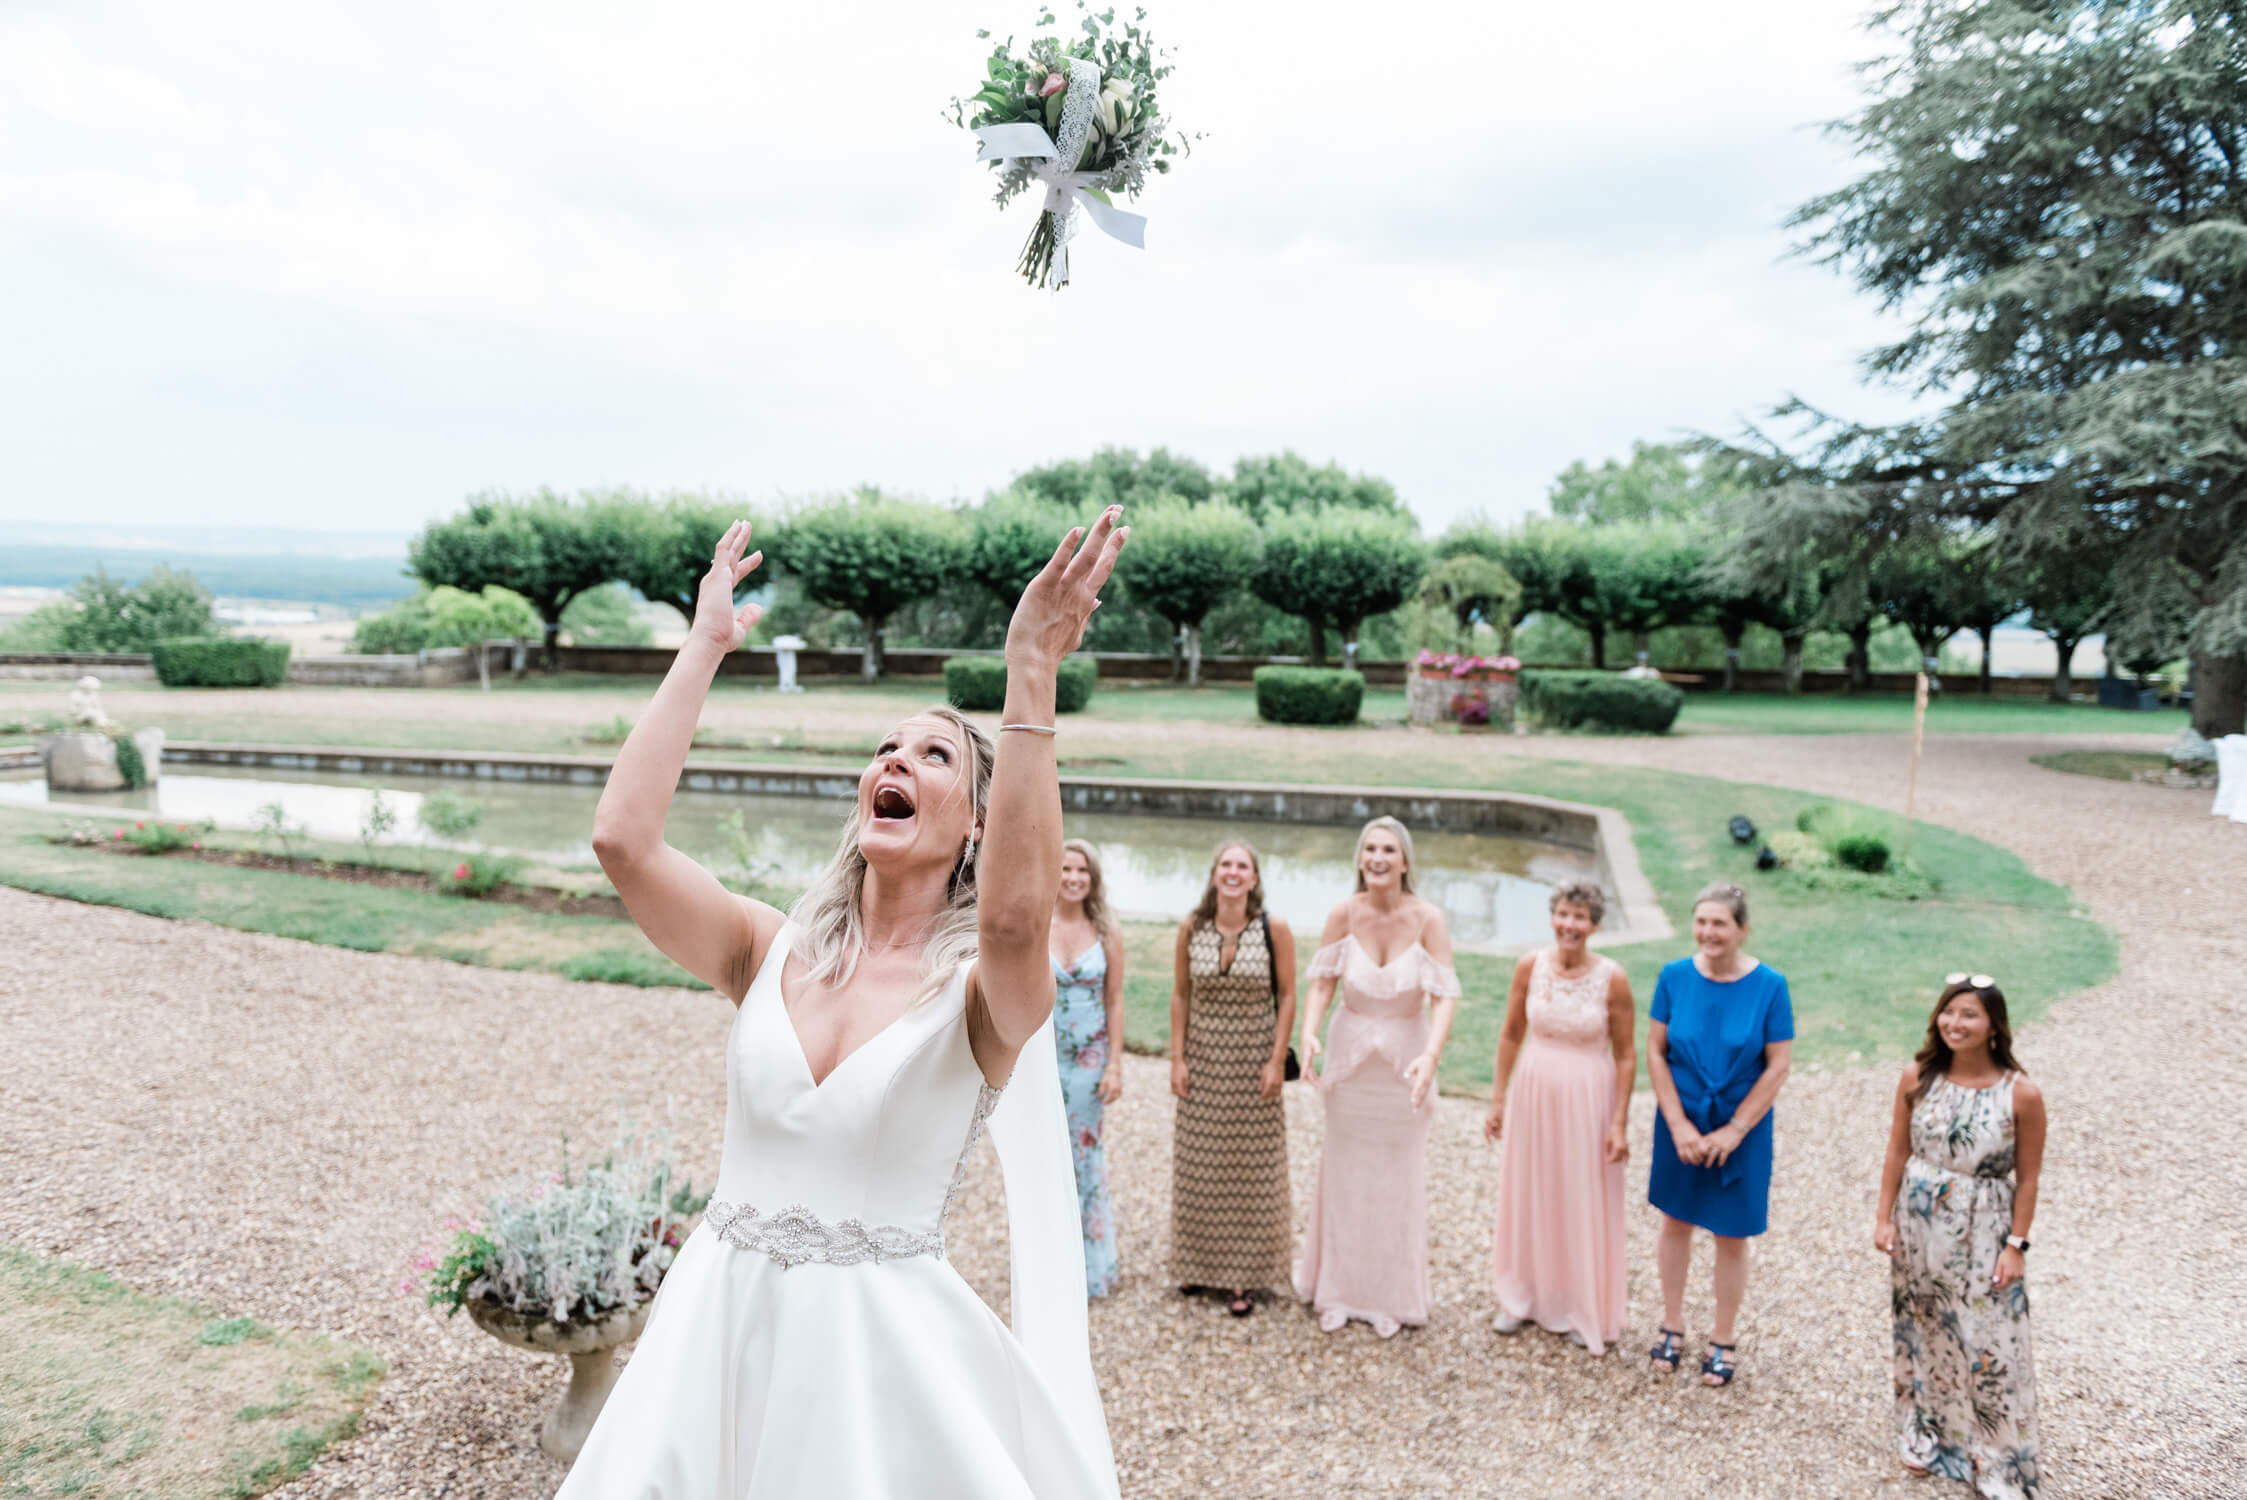 A bride throwing the bouquet at her destination wedding in France